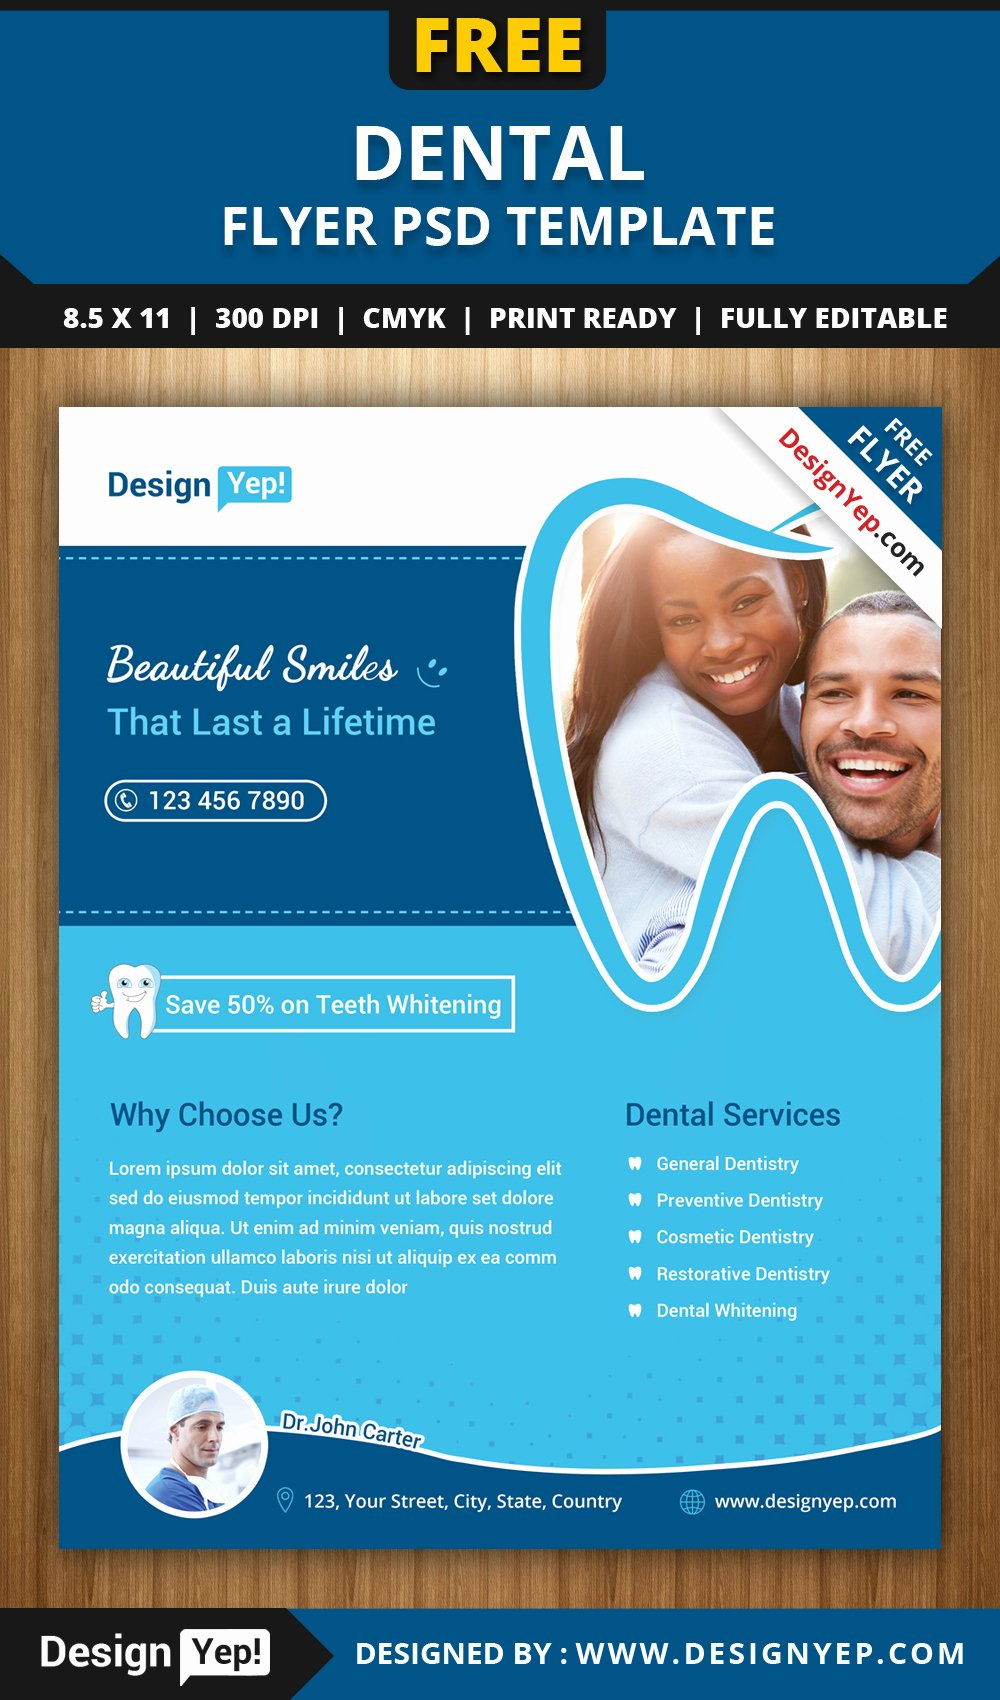 Free Dental Flyer Psd Template Designyep